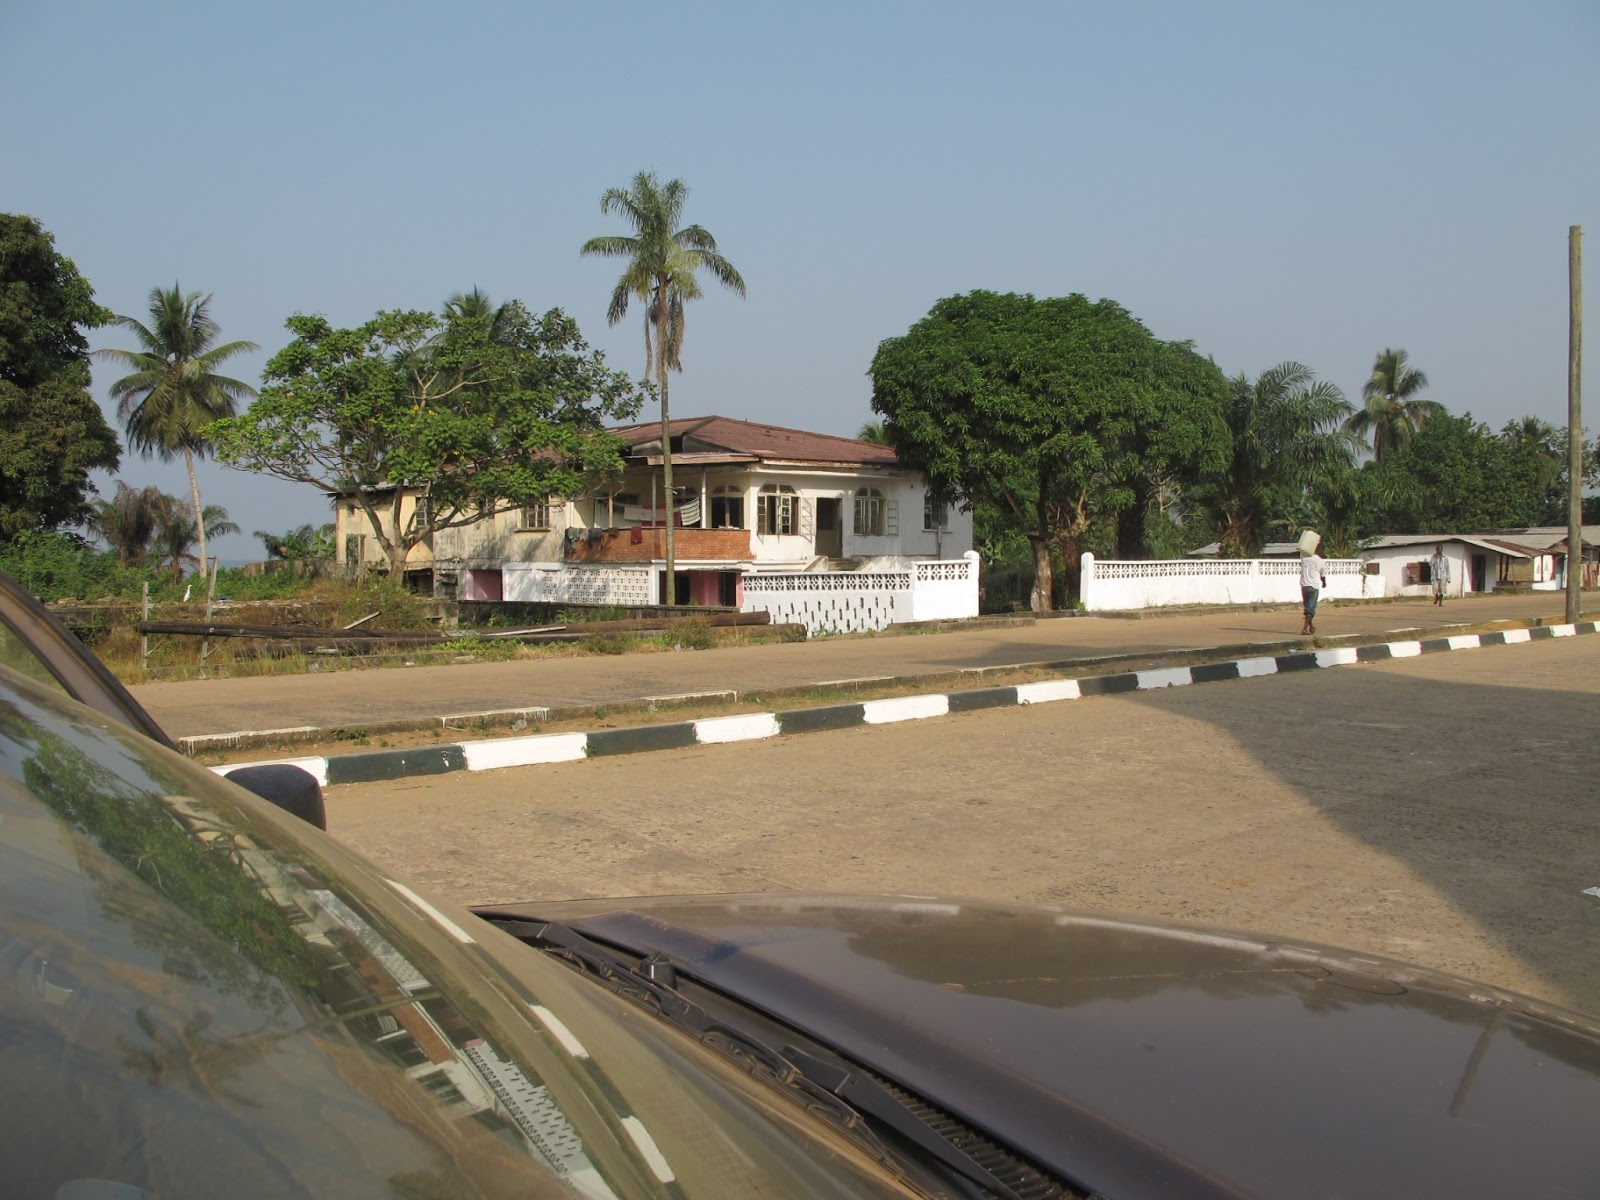 Revisiting Liberia: A Tale of Two Greenvilles